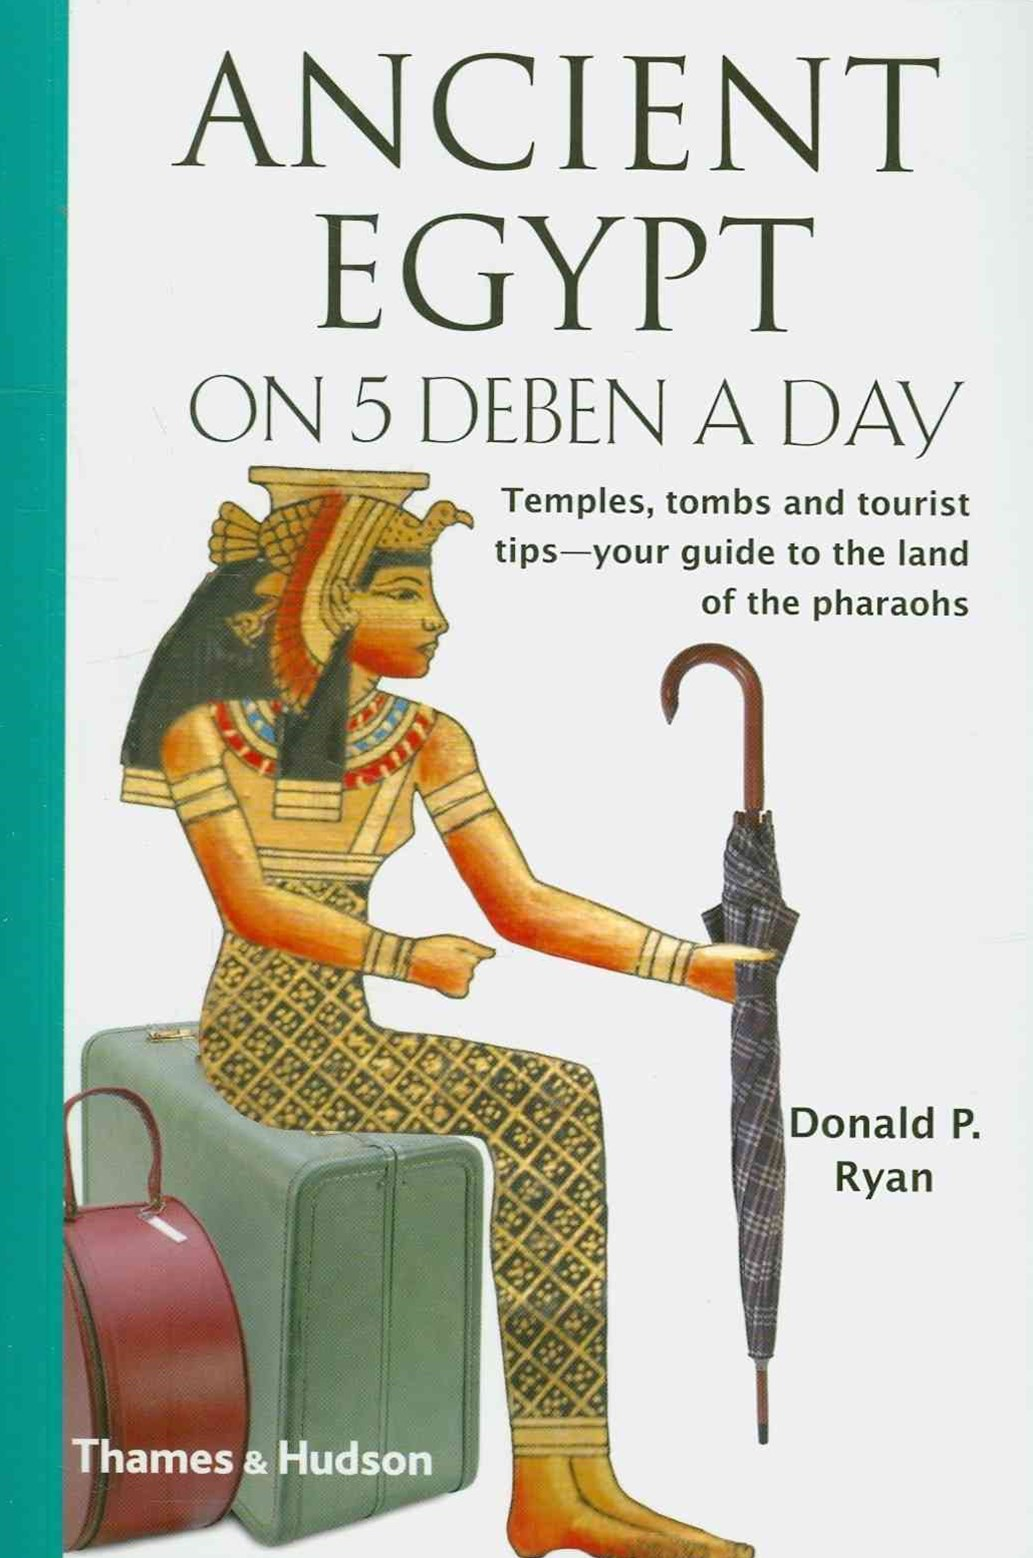 Ancient Egypt on 5 Deben a Day